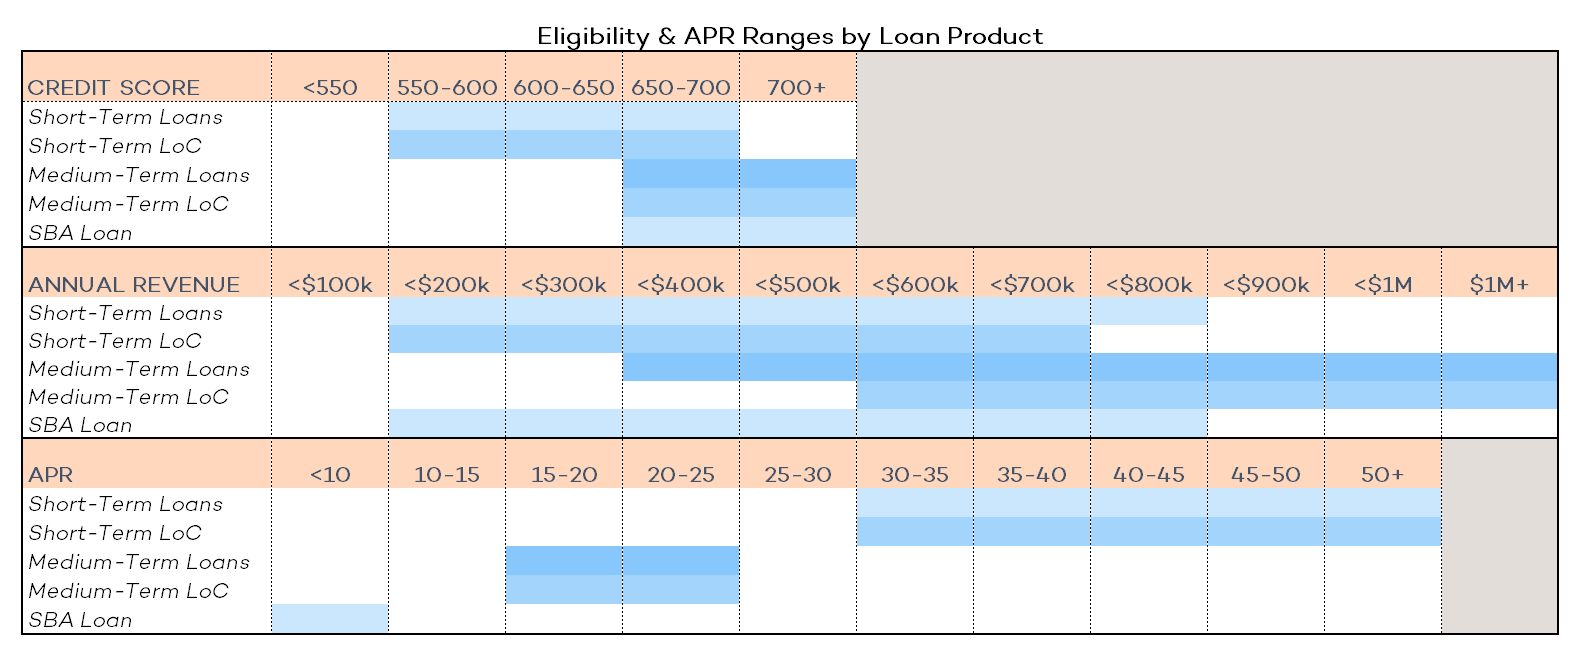 Eligibility & APR Ranges by Loan Product